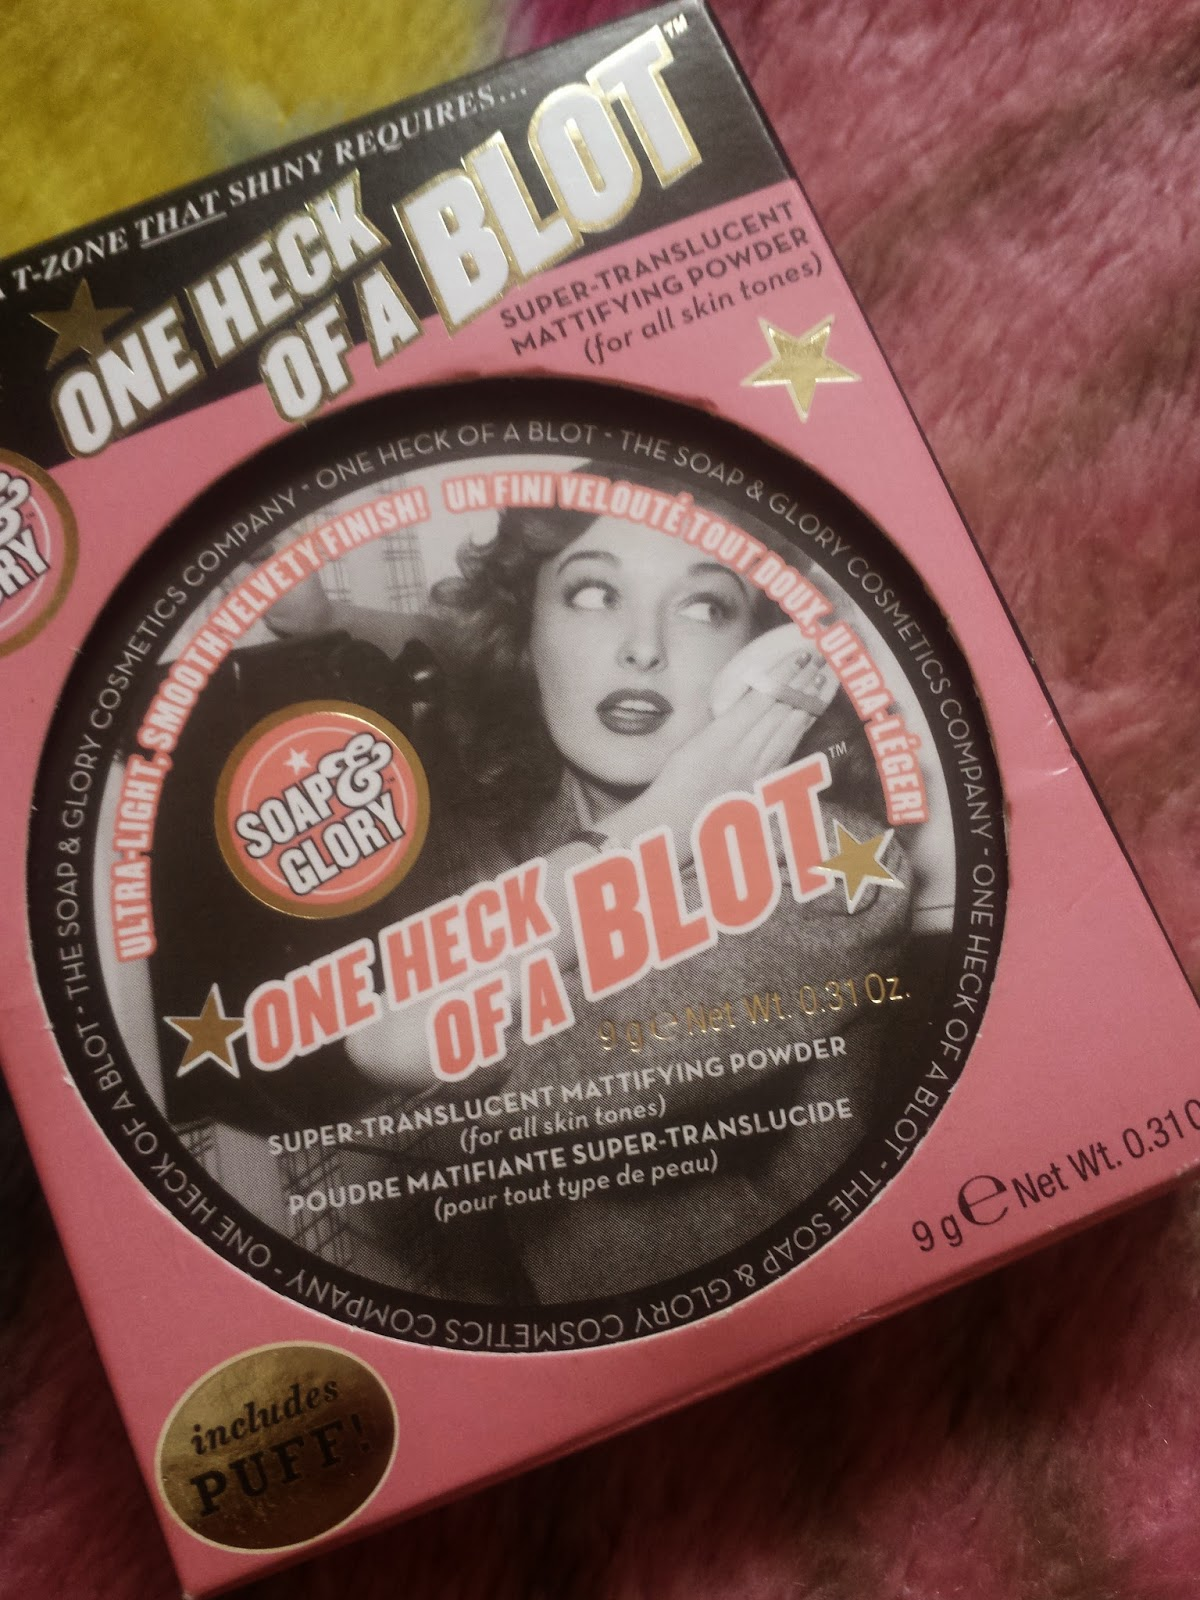 s&g one heck of a blot, s&g one heck of a blot review, soap and glory one heck of a blot, soap and glory one heck of a blot review